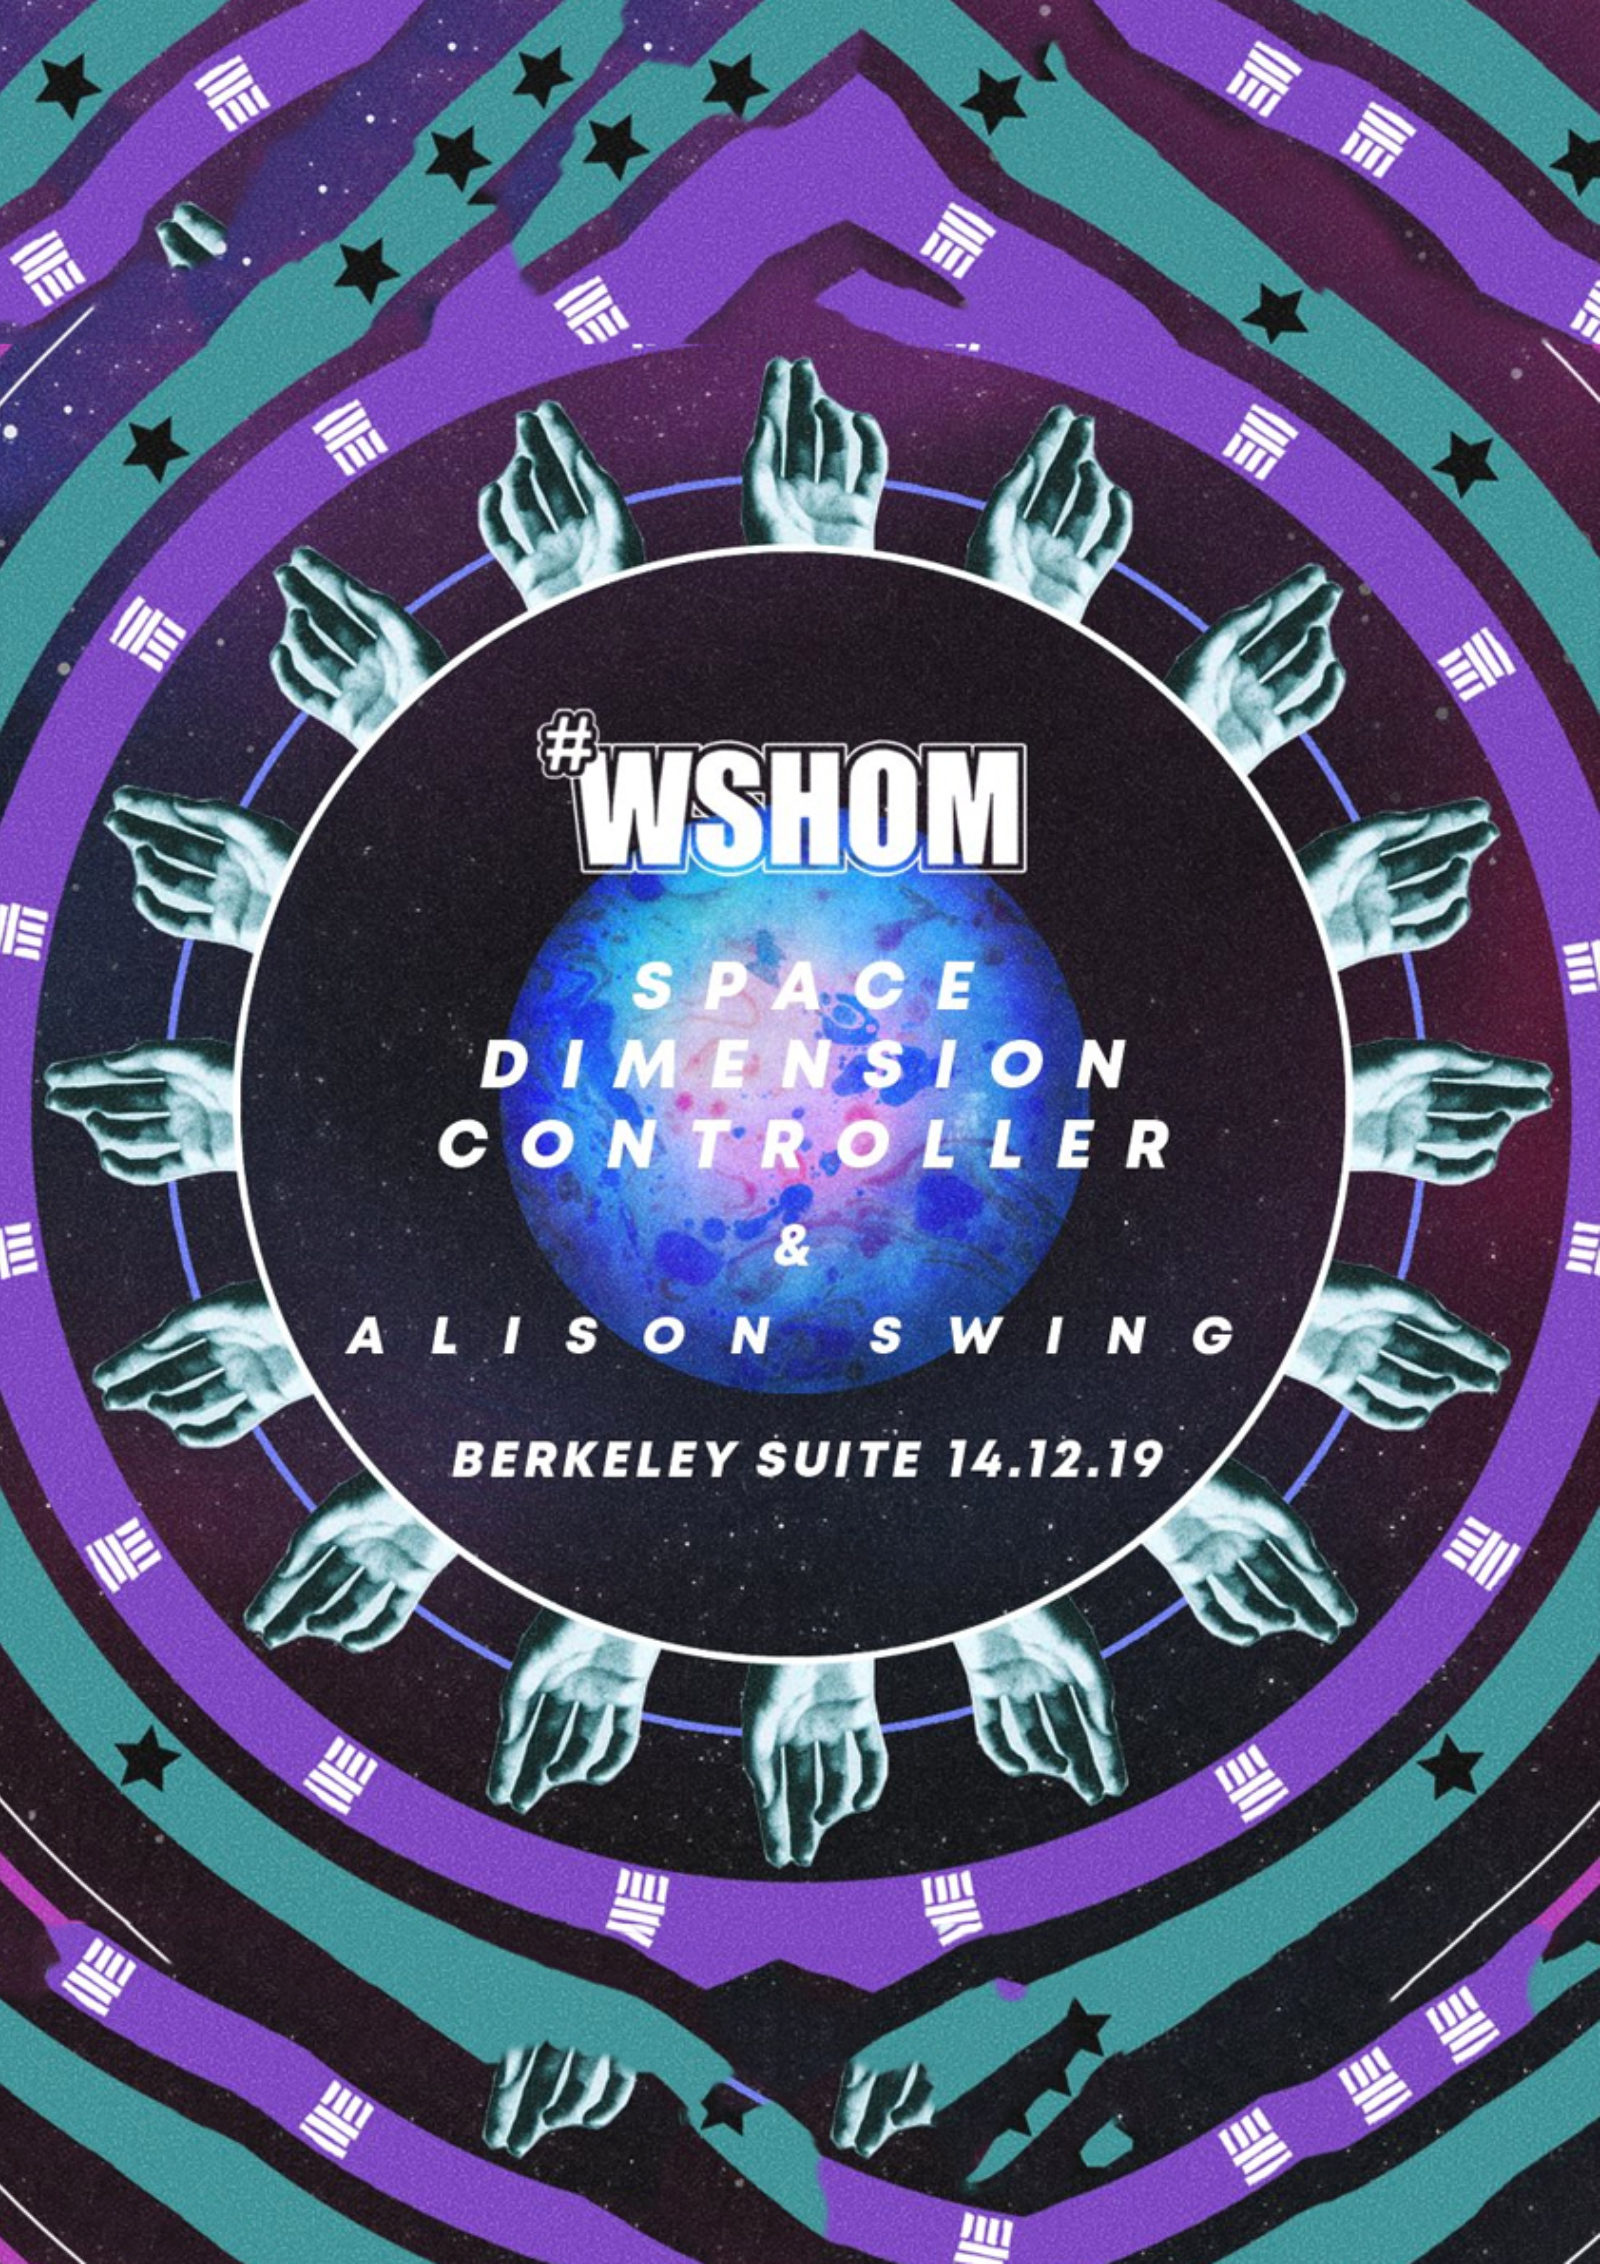 WSHOM with Space Dimension Controller